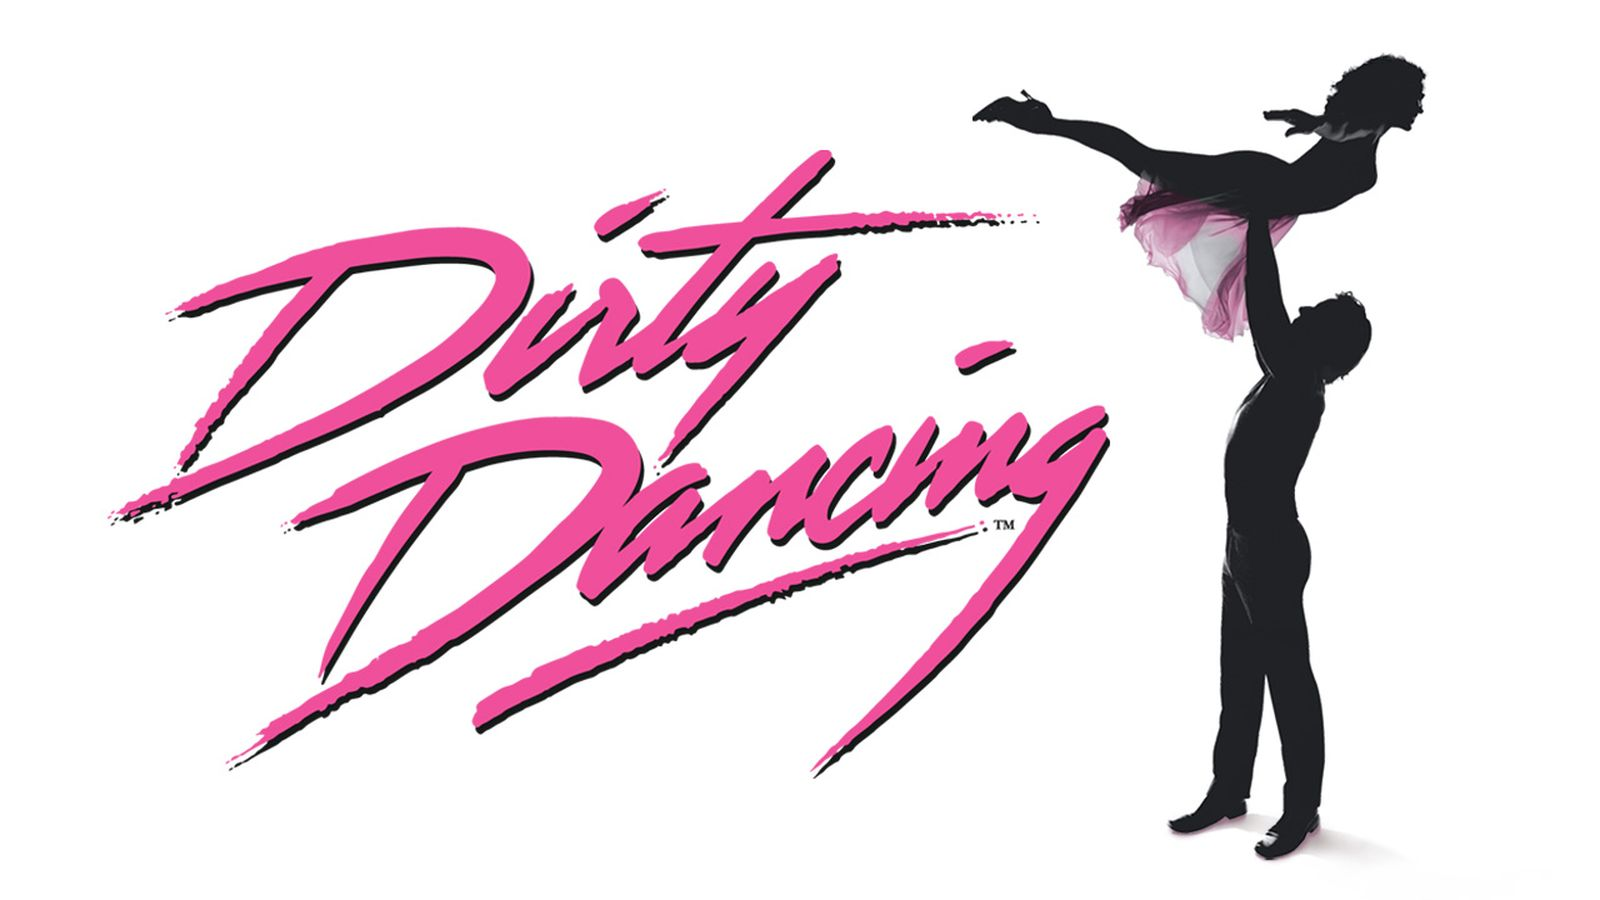 Dirty Dancing Paris